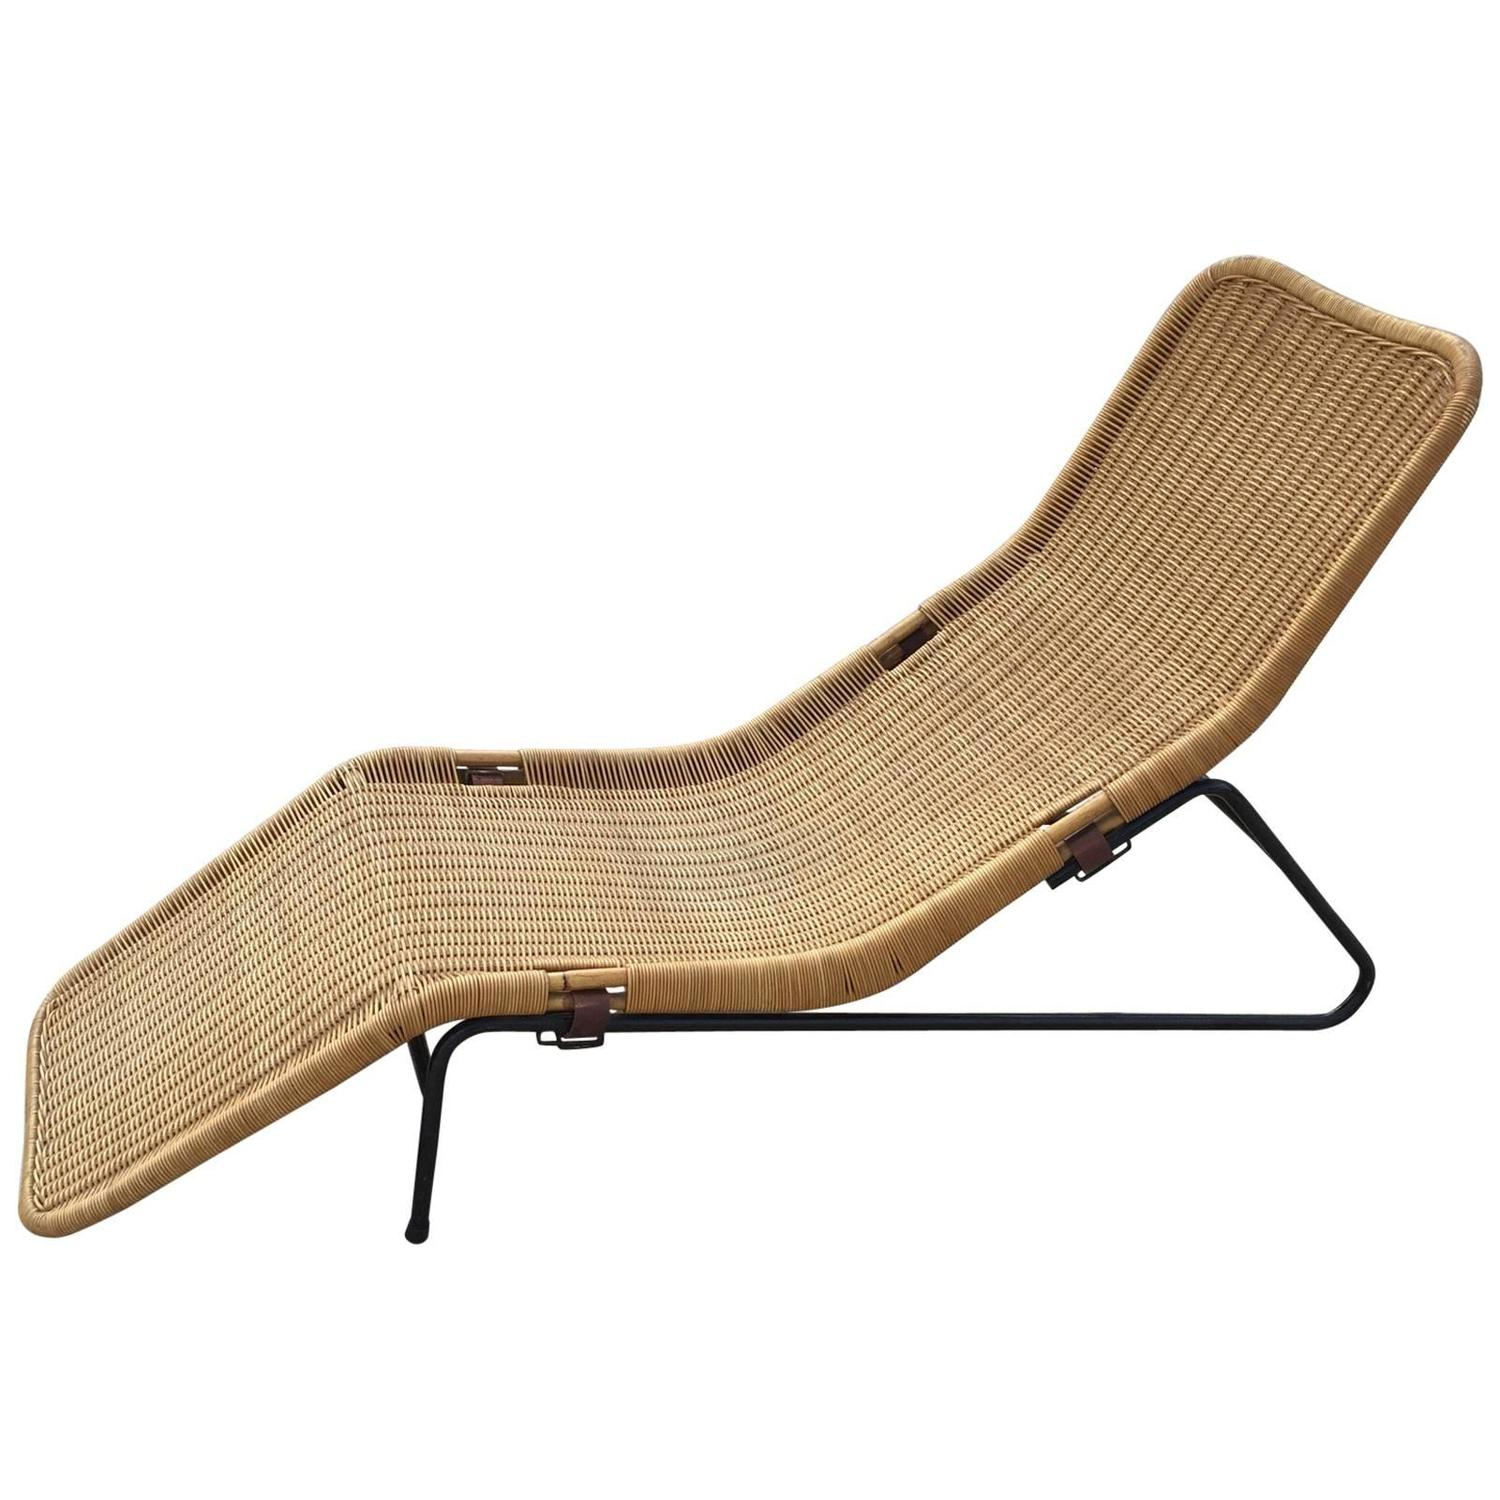 Dirk van sliedregt chaise longue in cane for sale at 1stdibs for Cane chaise longue